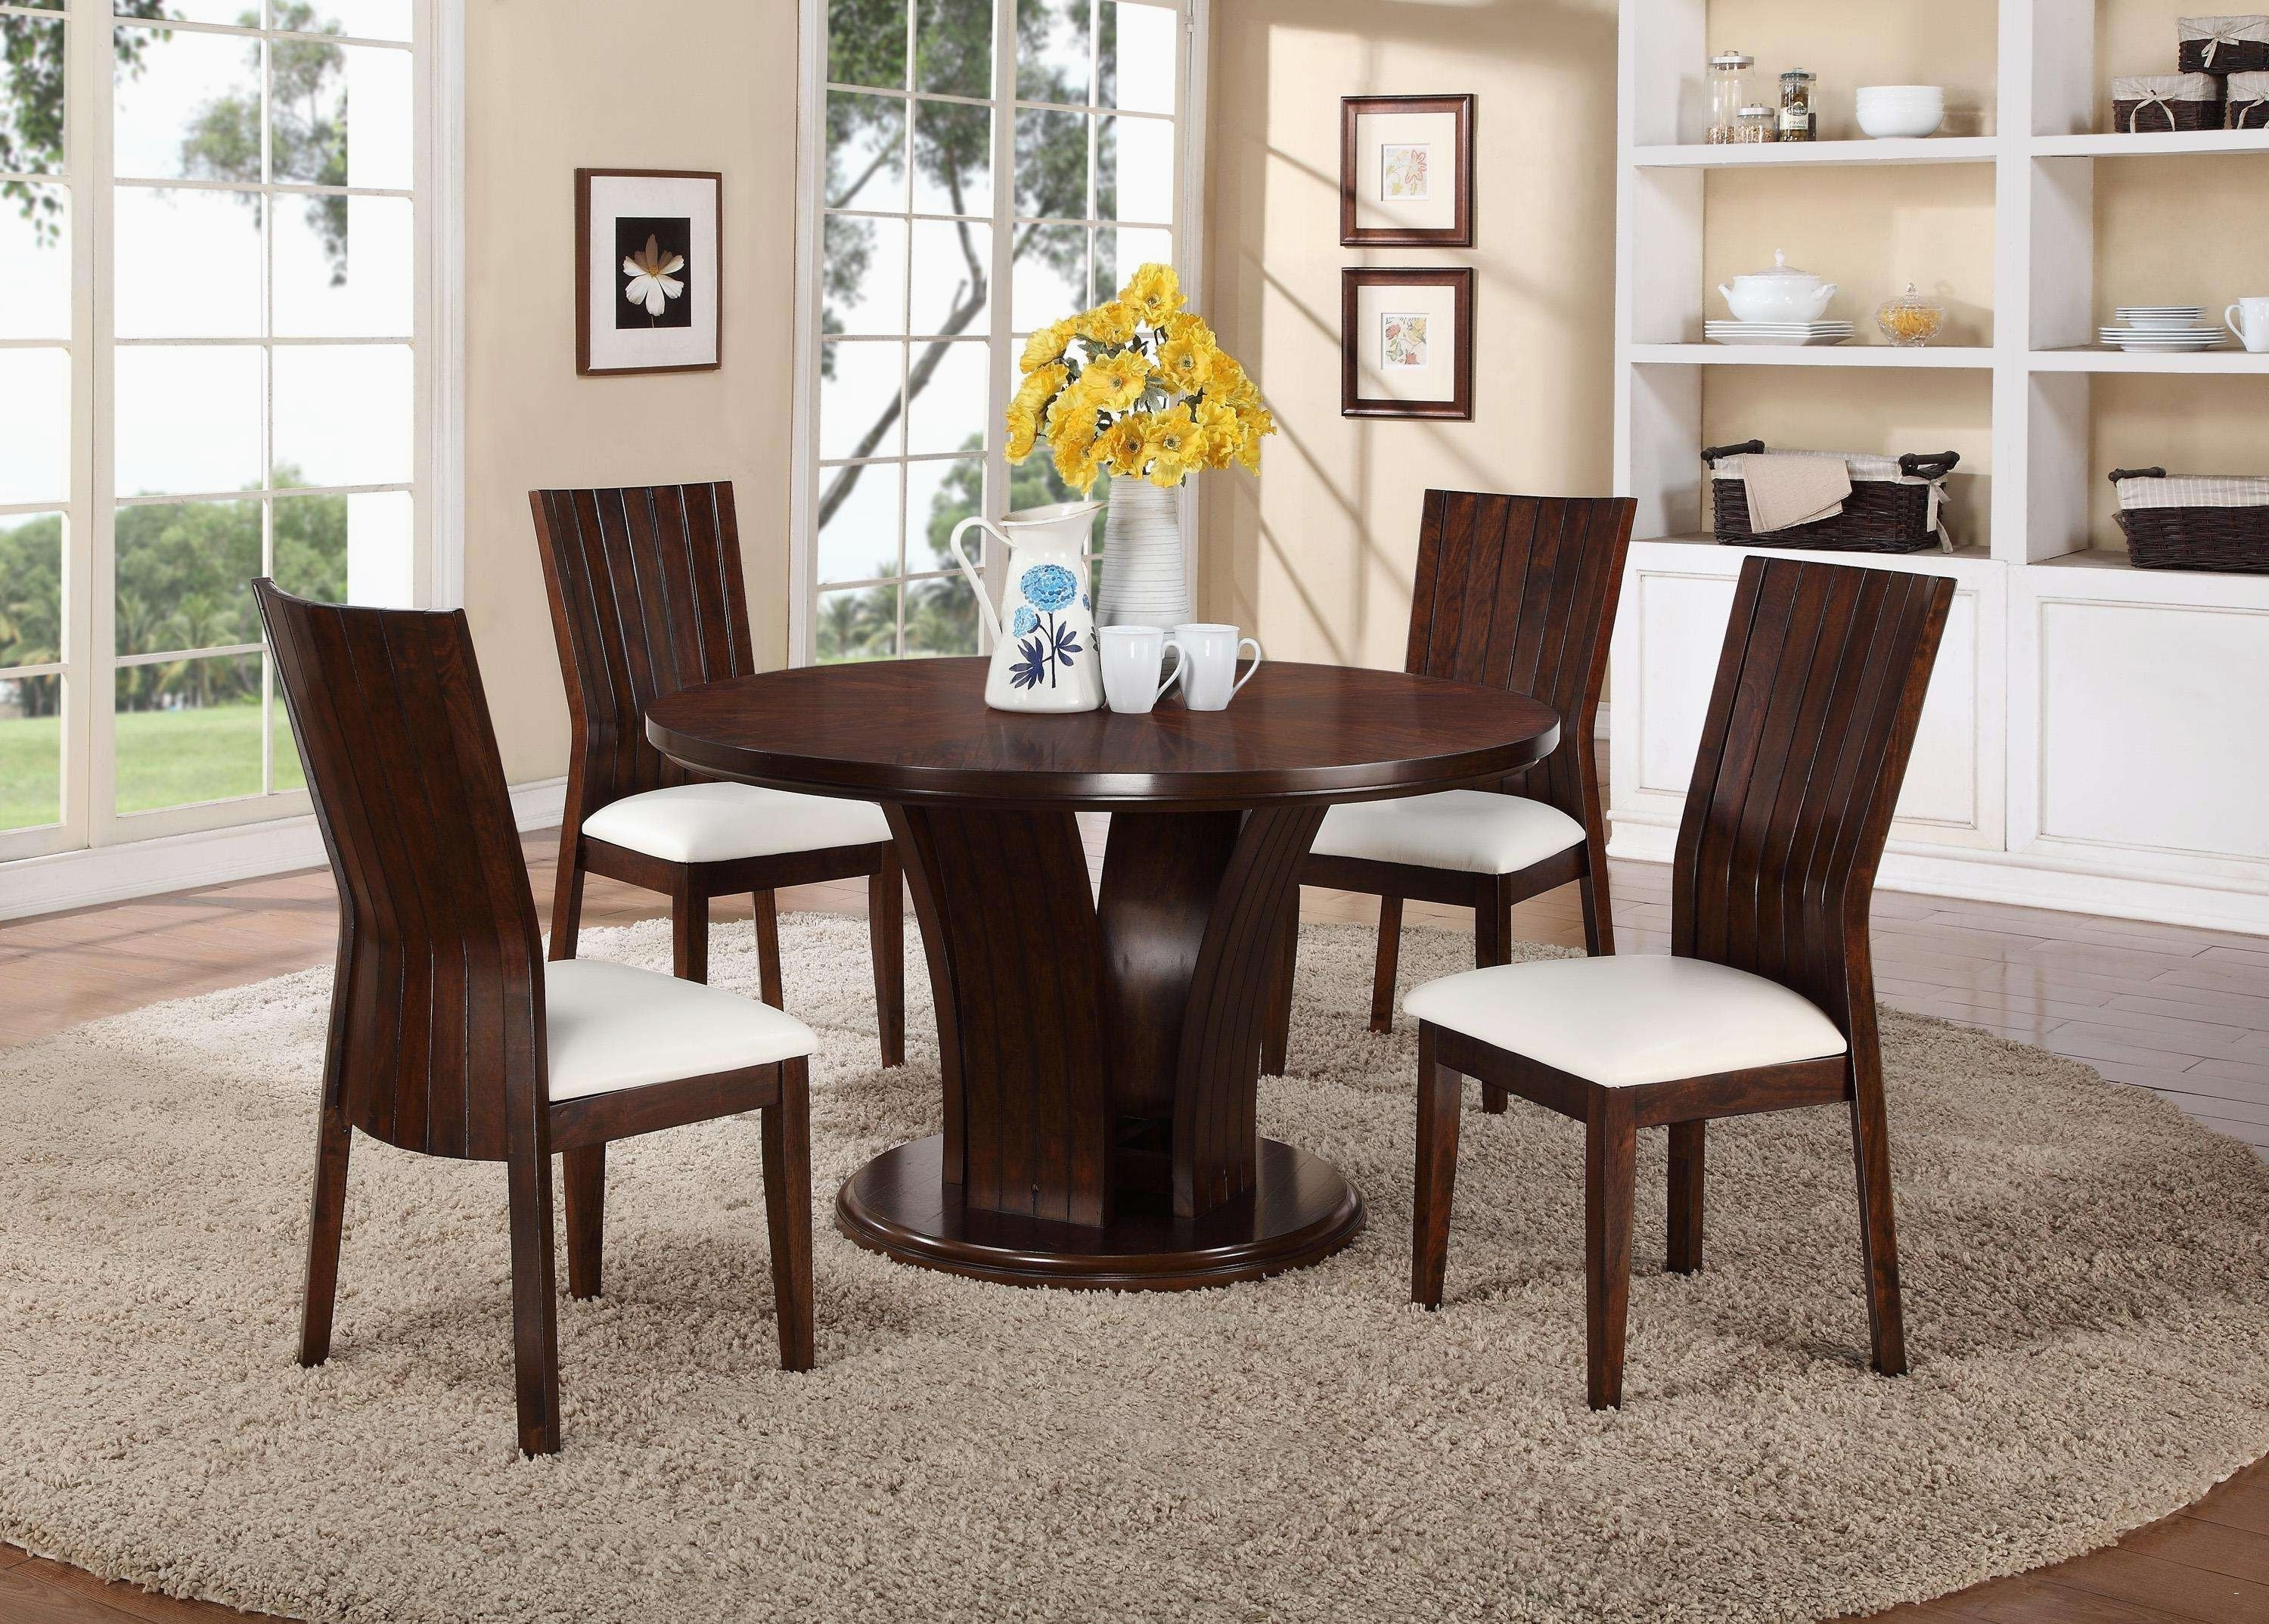 Craftsman Style Dining Room Furniture Inspirationa 6 Seat Round Regarding Best And Newest Craftsman Round Dining Tables (View 12 of 25)